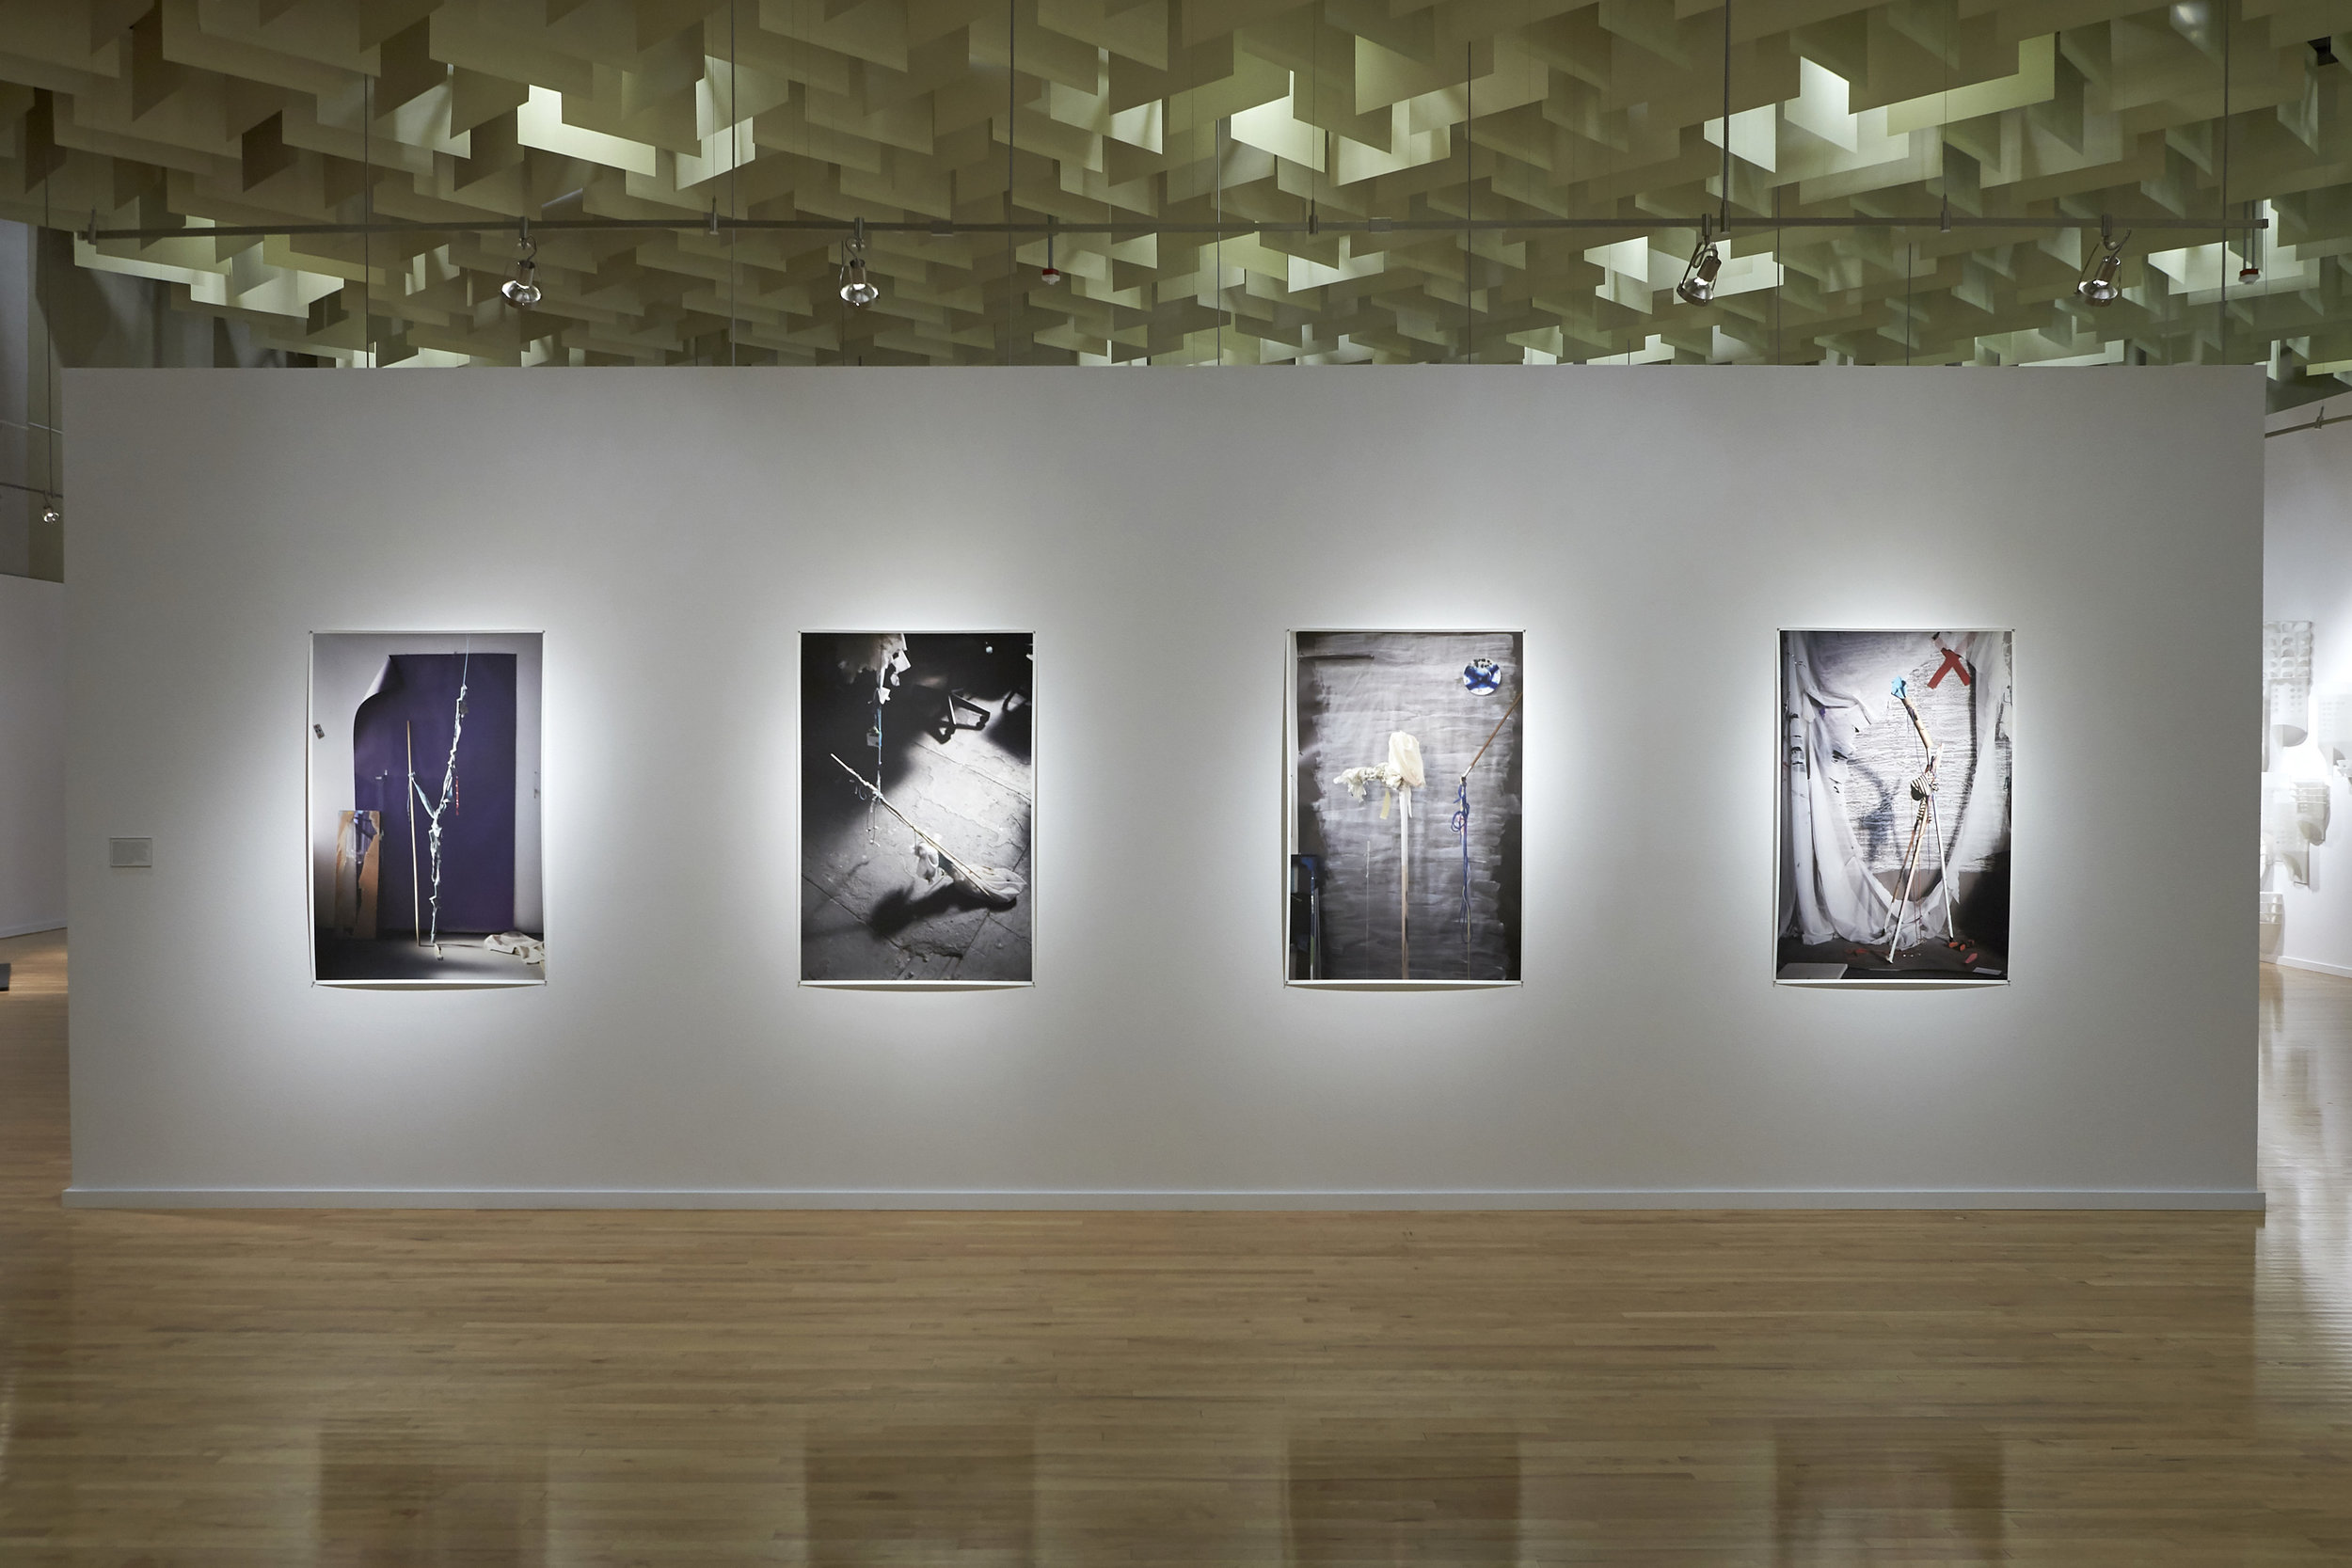 installation view of David Gilbert's archival inkjet prints in the exhibition FIVE at the Marjorie Barrick Museum. All works courtesy the artist, Klaus von Nichtssagend Gallery, NYC and Anthony Meier Arts, San Francisco, CA. (photo credit: R. Marsh Starks / UNLV Photo Services)